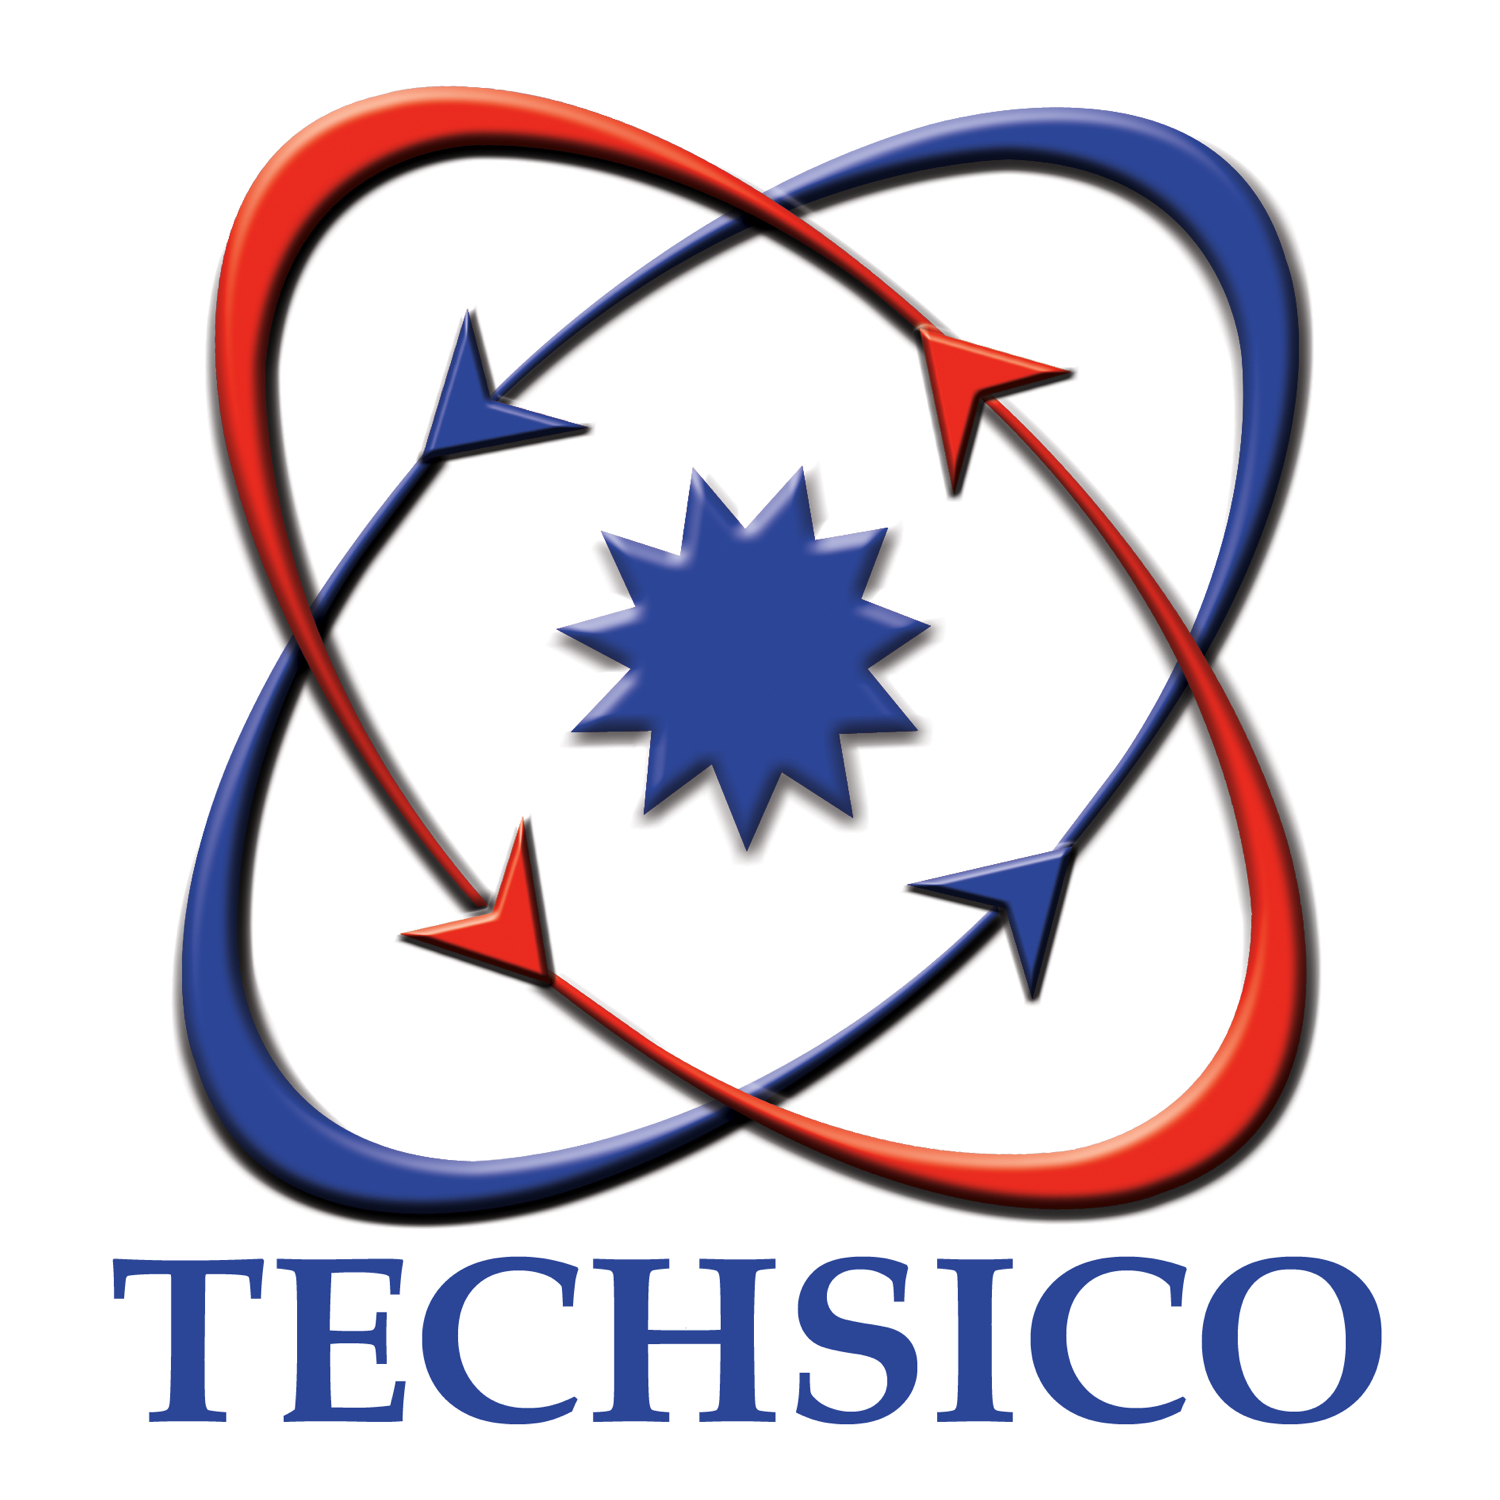 Techsico   Techsico works on low-voltage systems including fire alarms, CCTV, access controls, audio/video and infrastructure cabling. If it's technology, it's TECHSICO.